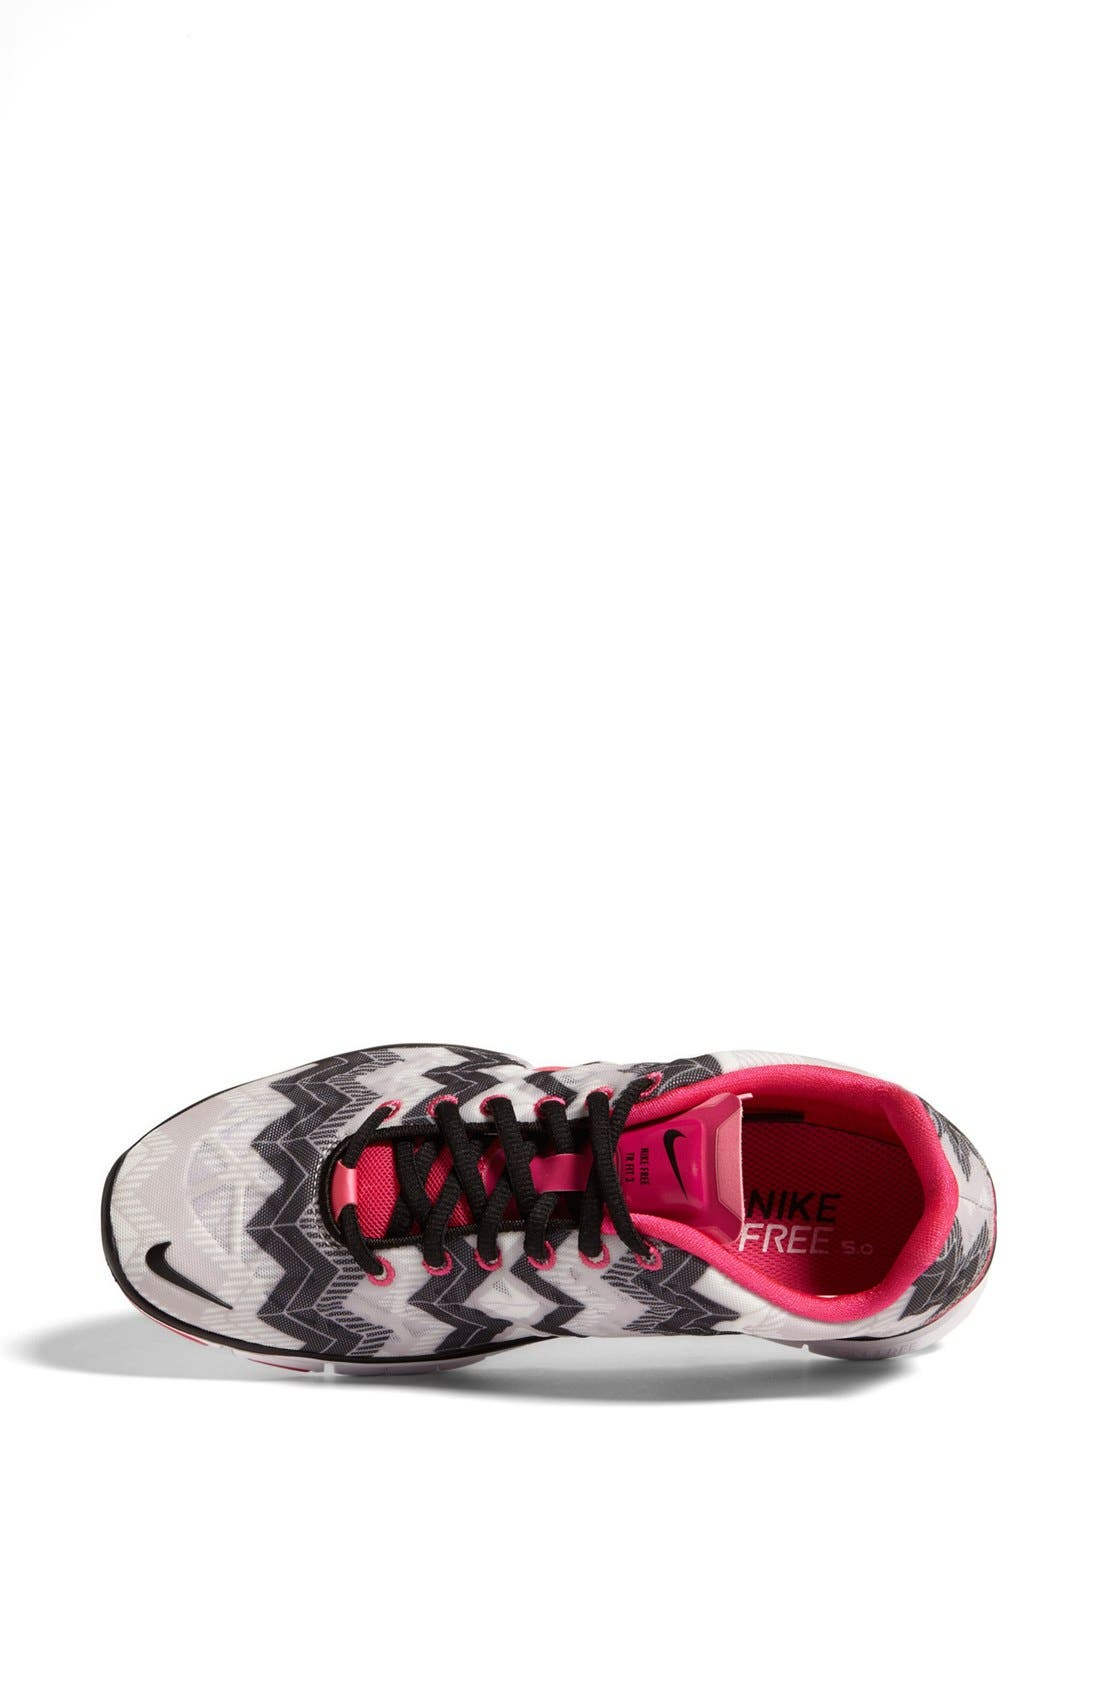 'Free TR Fit 3 Print' Training Shoe,                             Alternate thumbnail 3, color,                             Grey/ Black/ Pink Foil